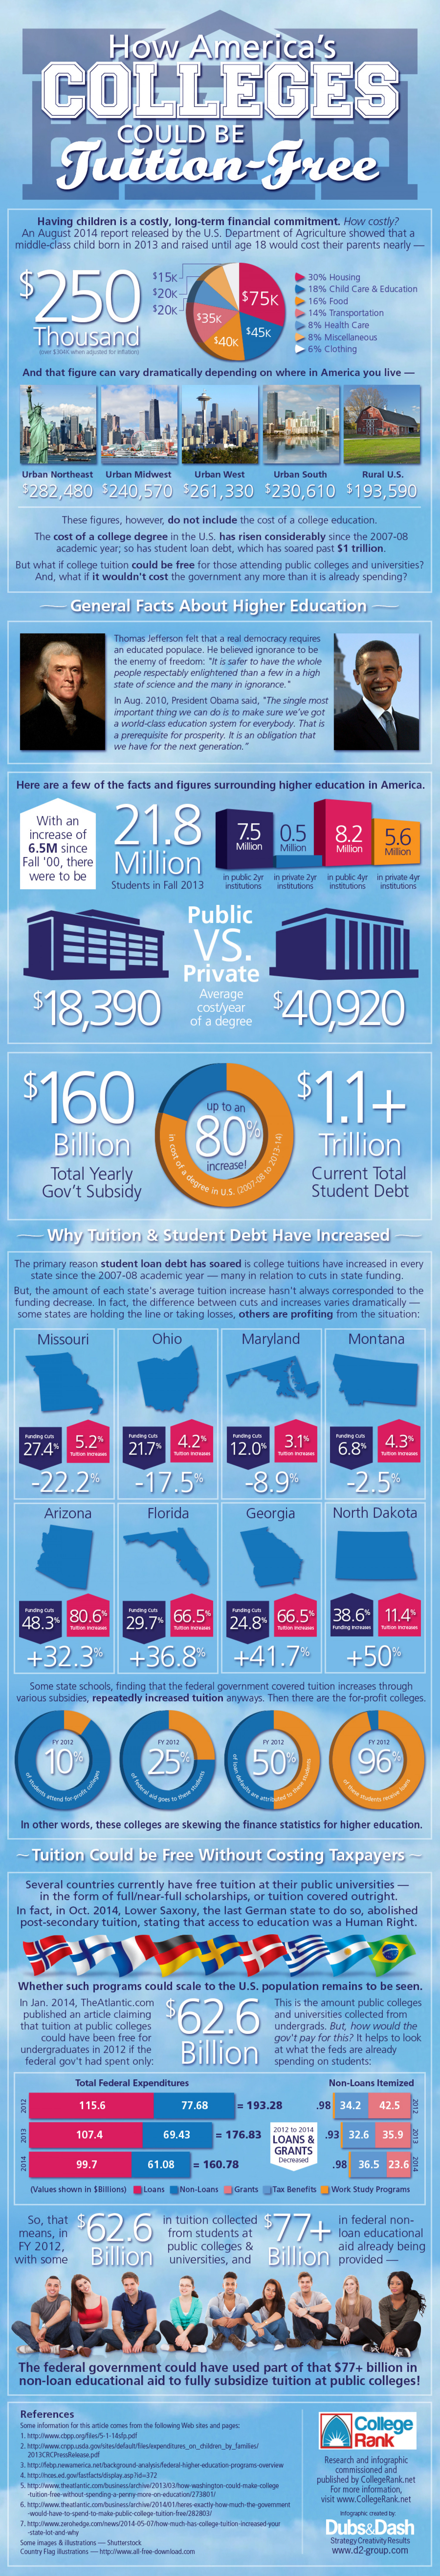 How America's Colleges Could be Tuition-Free Infographic